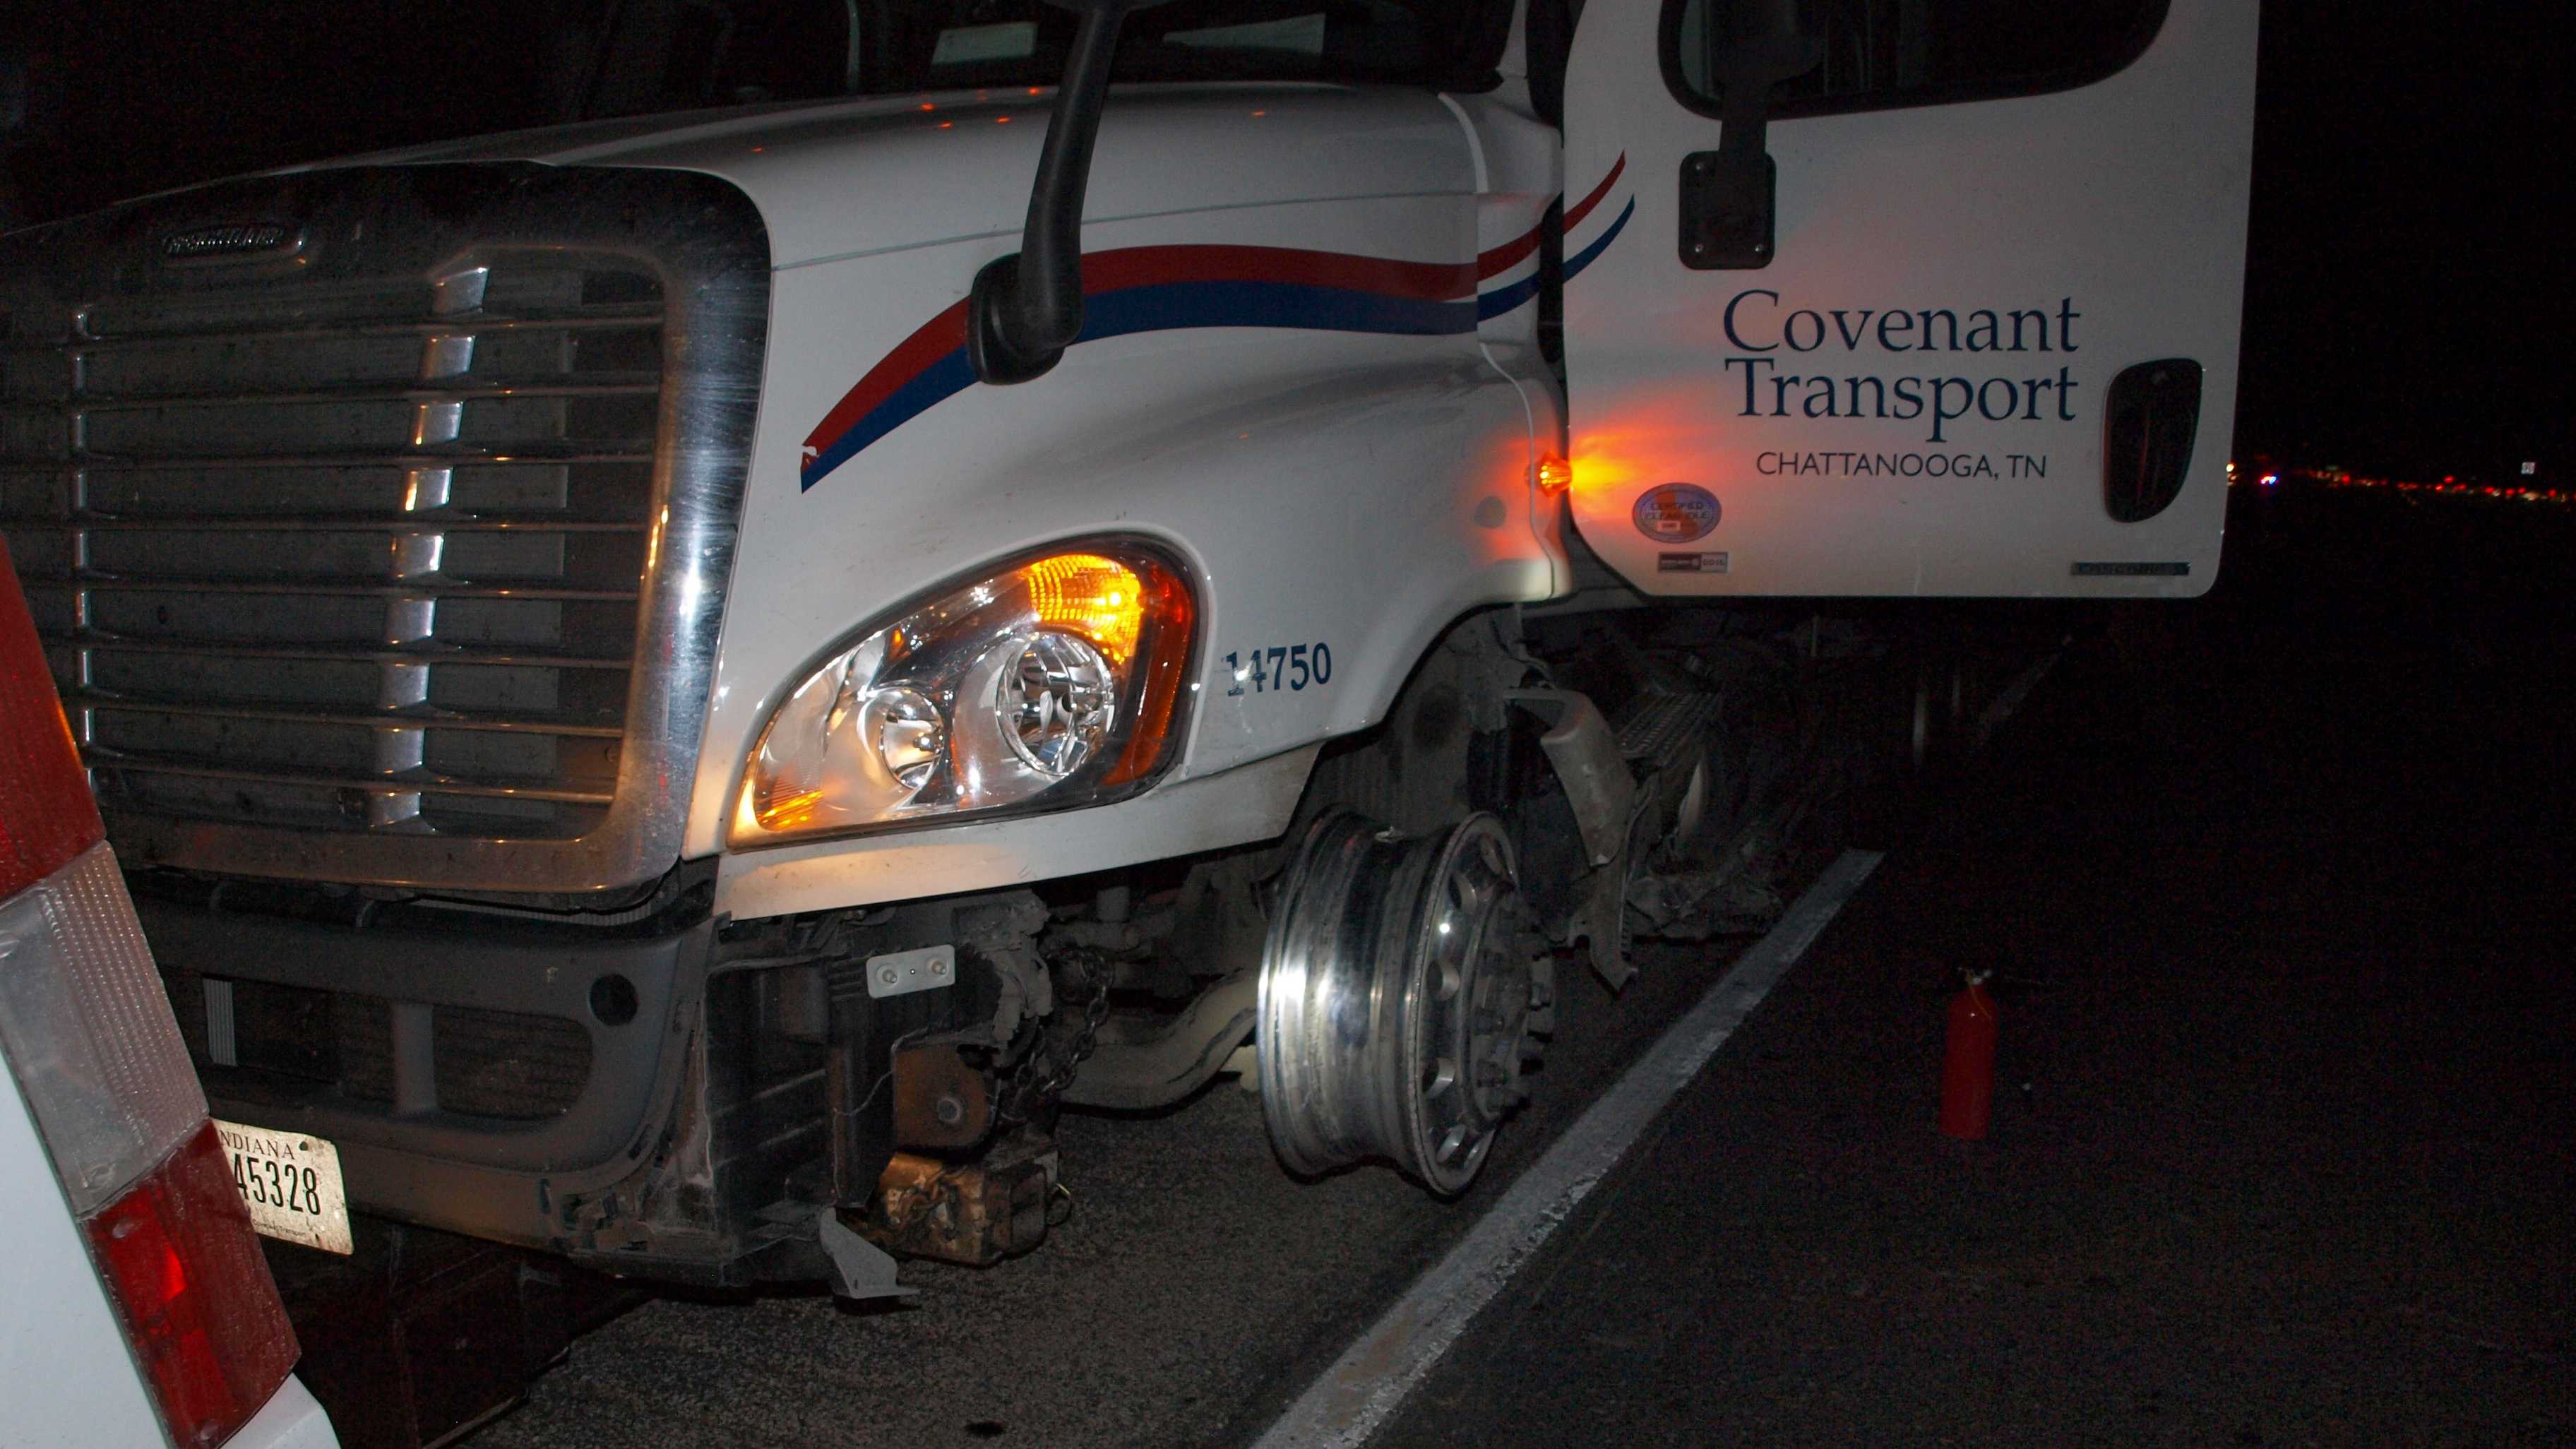 Several injured when semi-truck collides with van